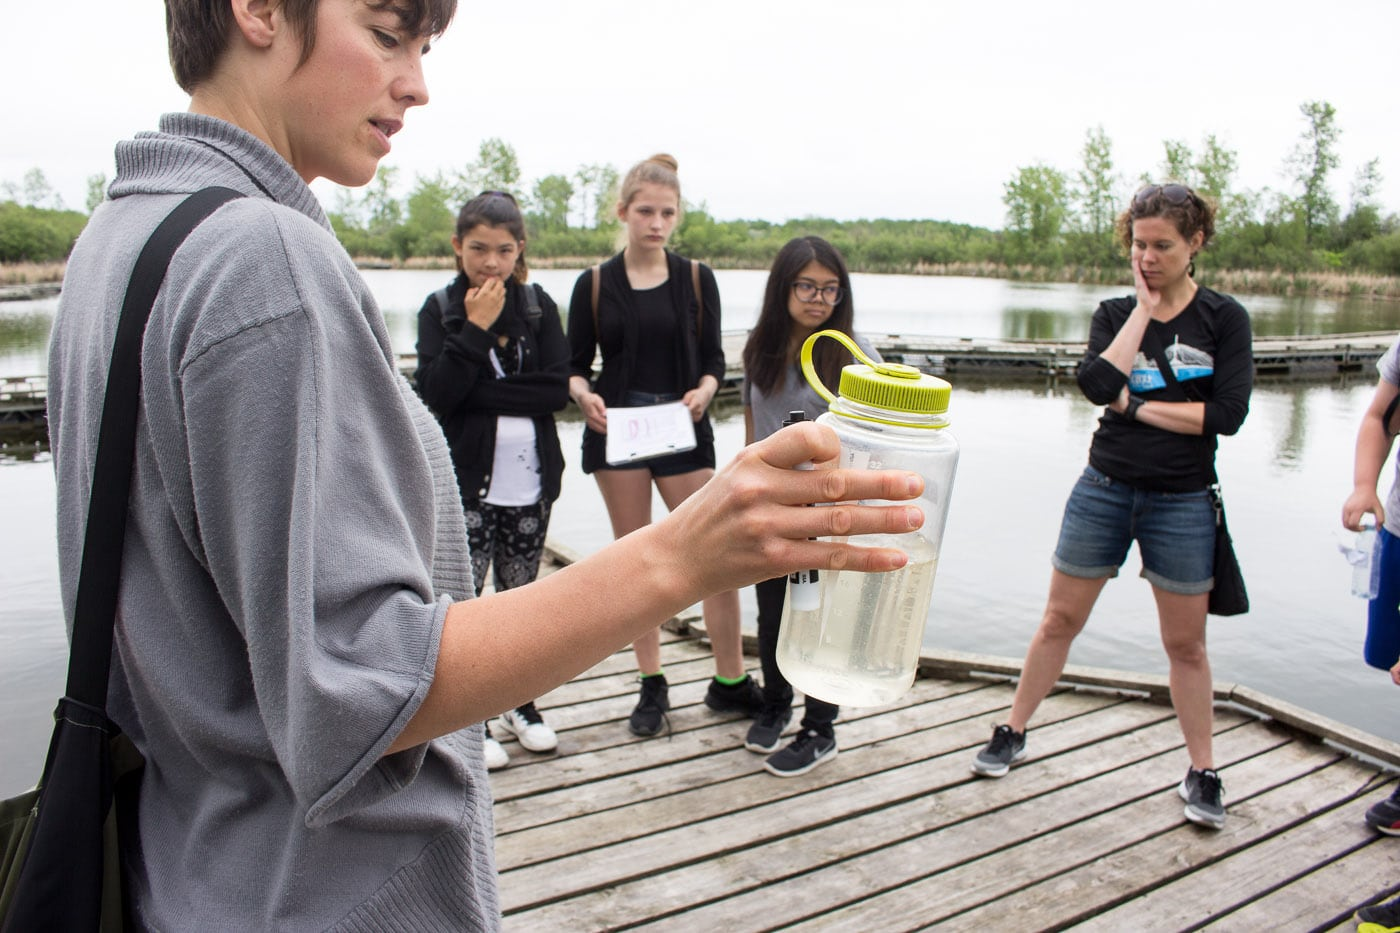 FortWhyte staff member describing water sample to student group